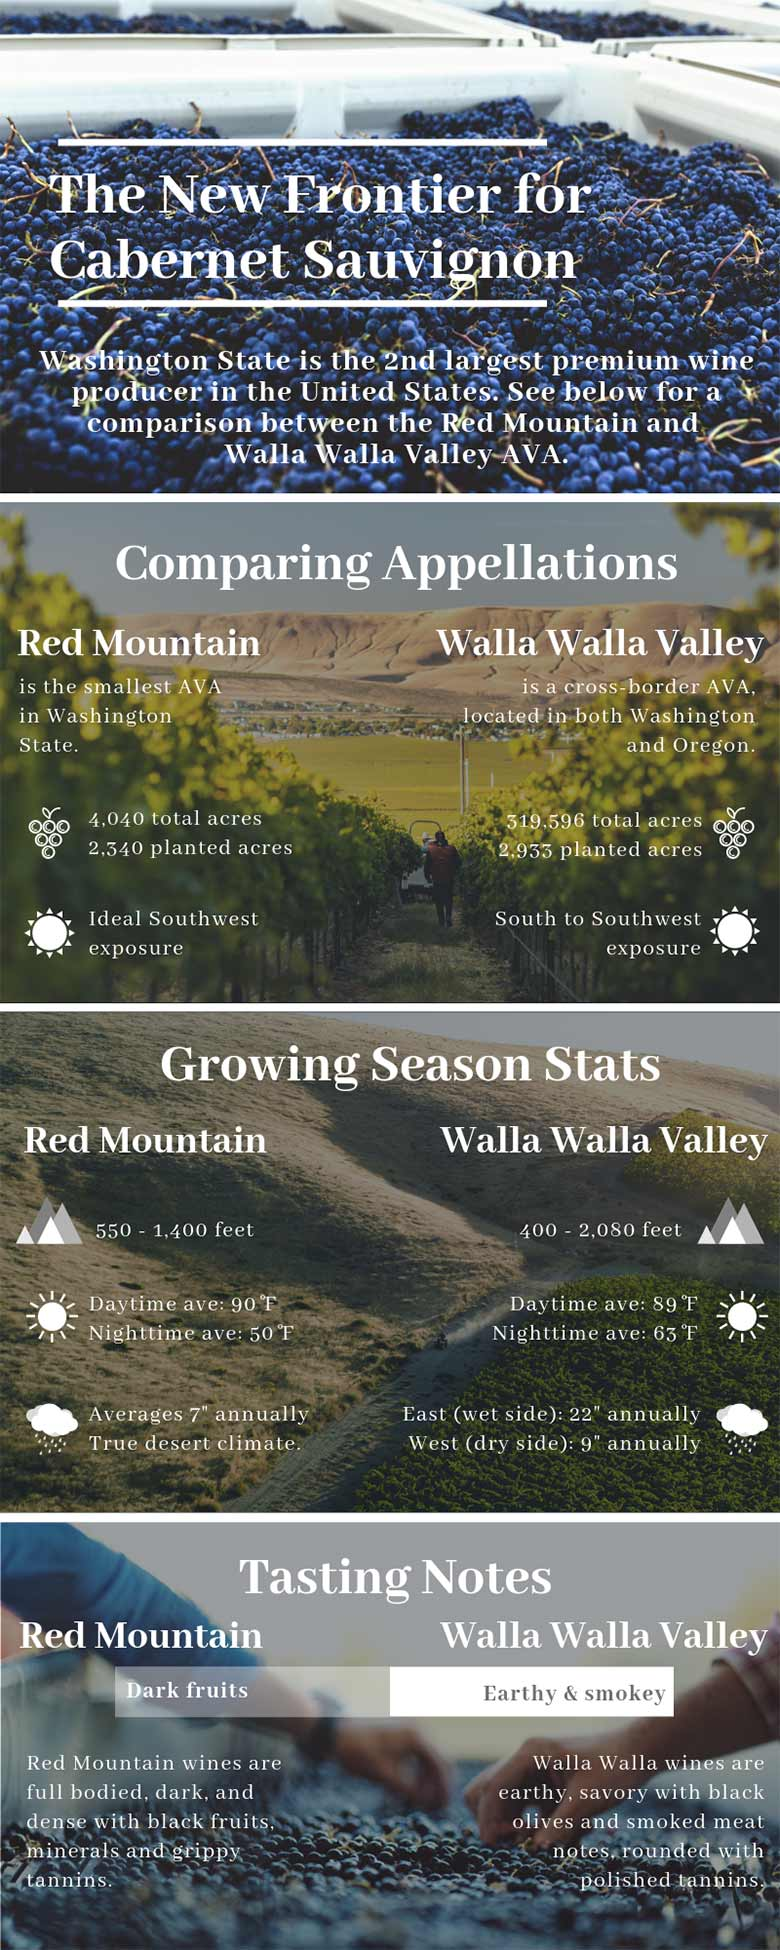 Infographic comparing red mountain and walla walla valley stats